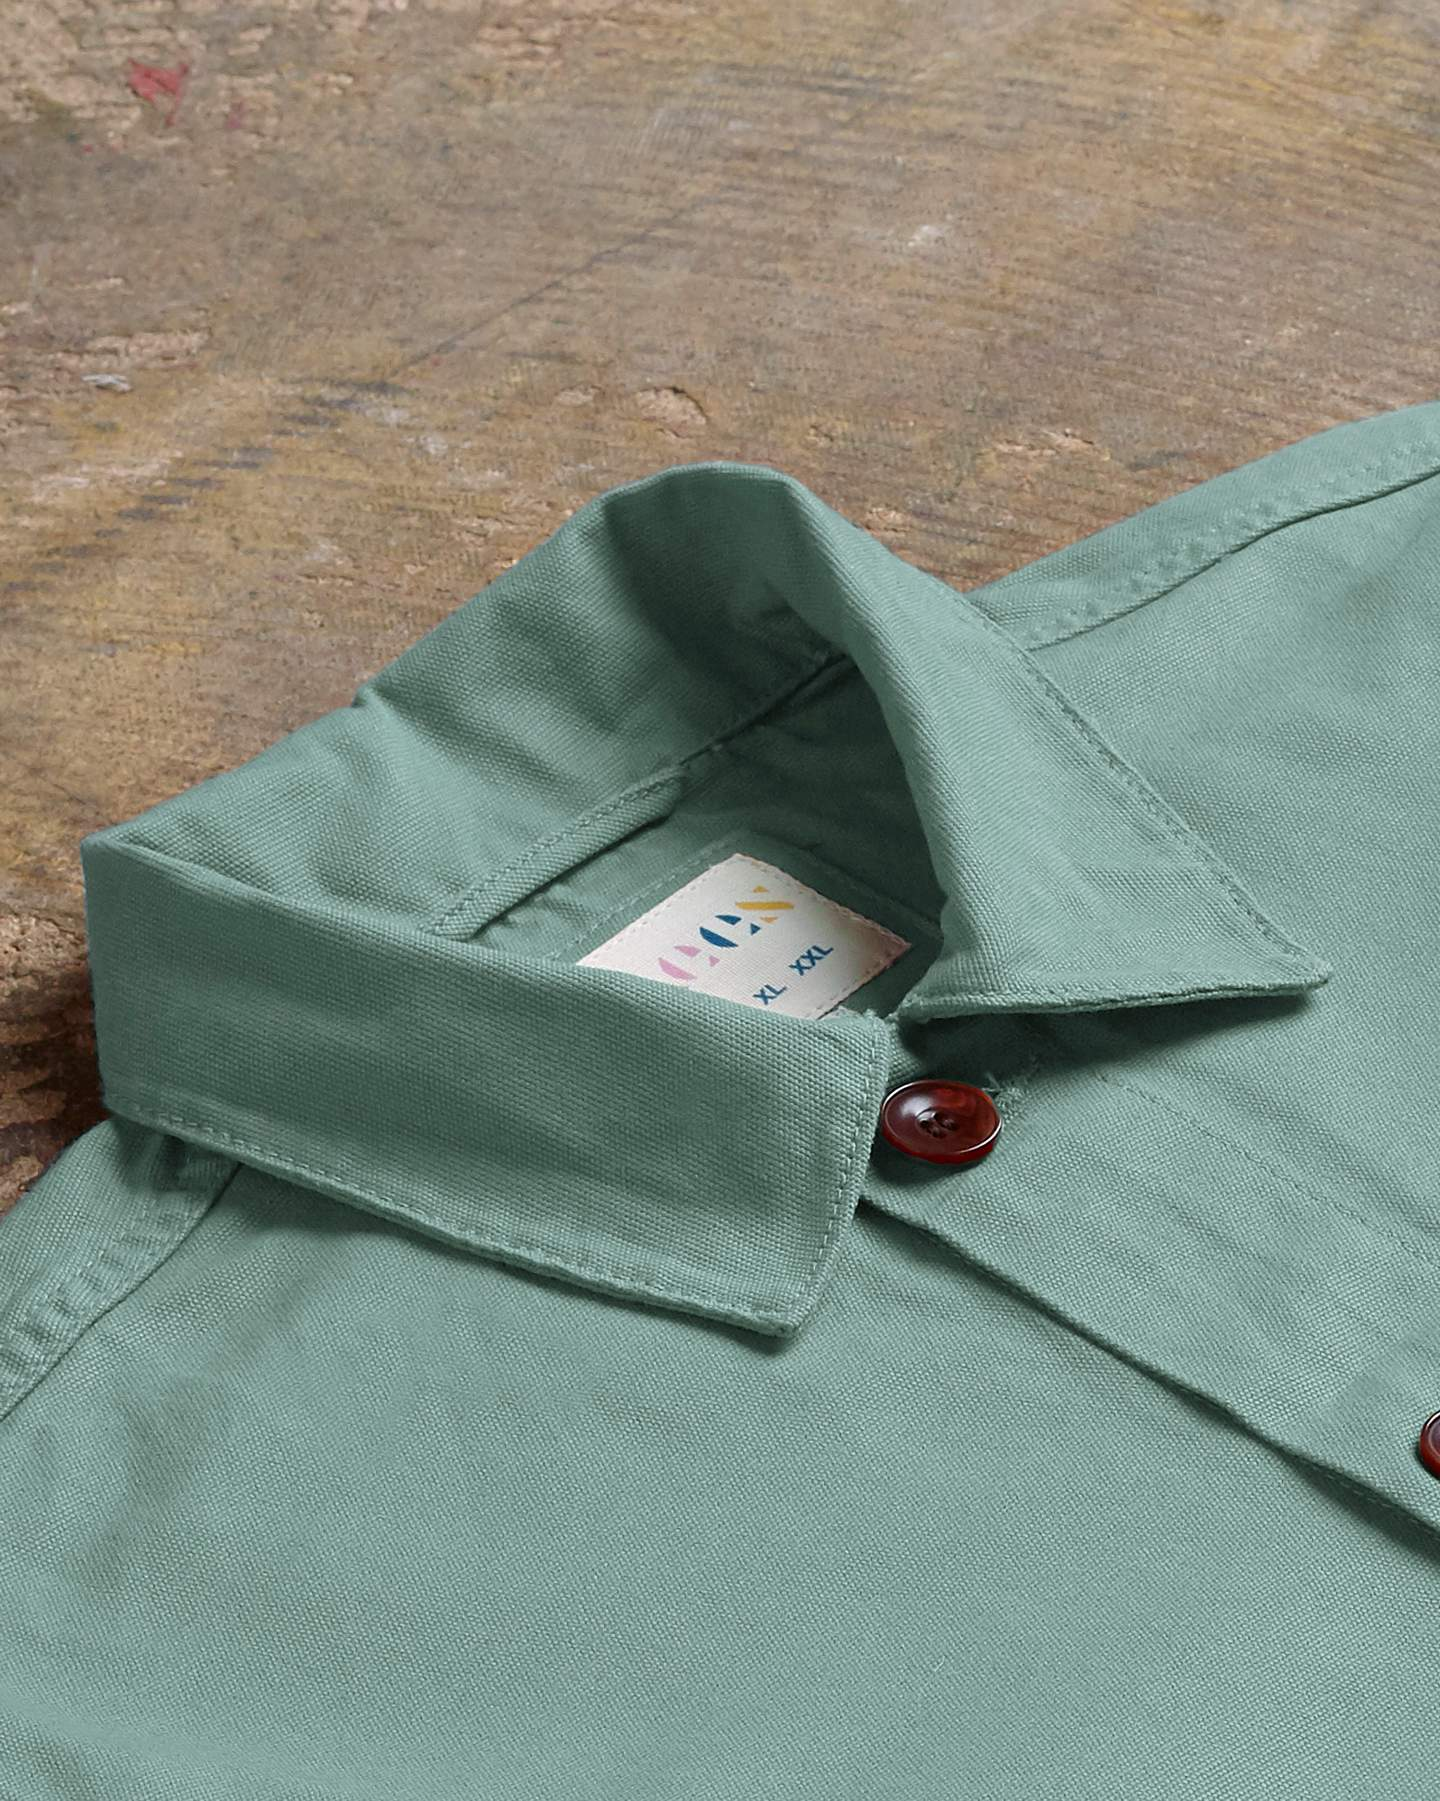 The #3001 Buttoned Overshirt in Jade